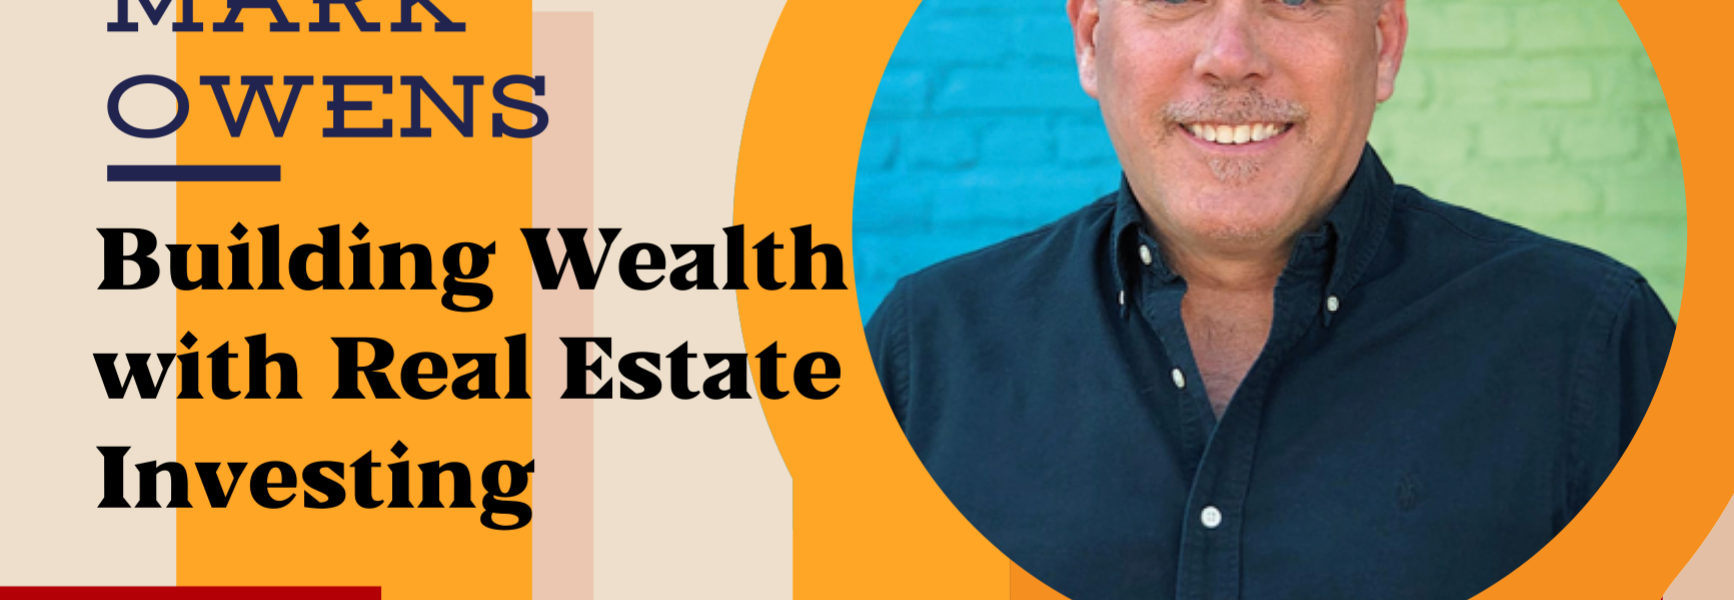 Image of Building Wealth with Real Estate Investing with Mark Owens